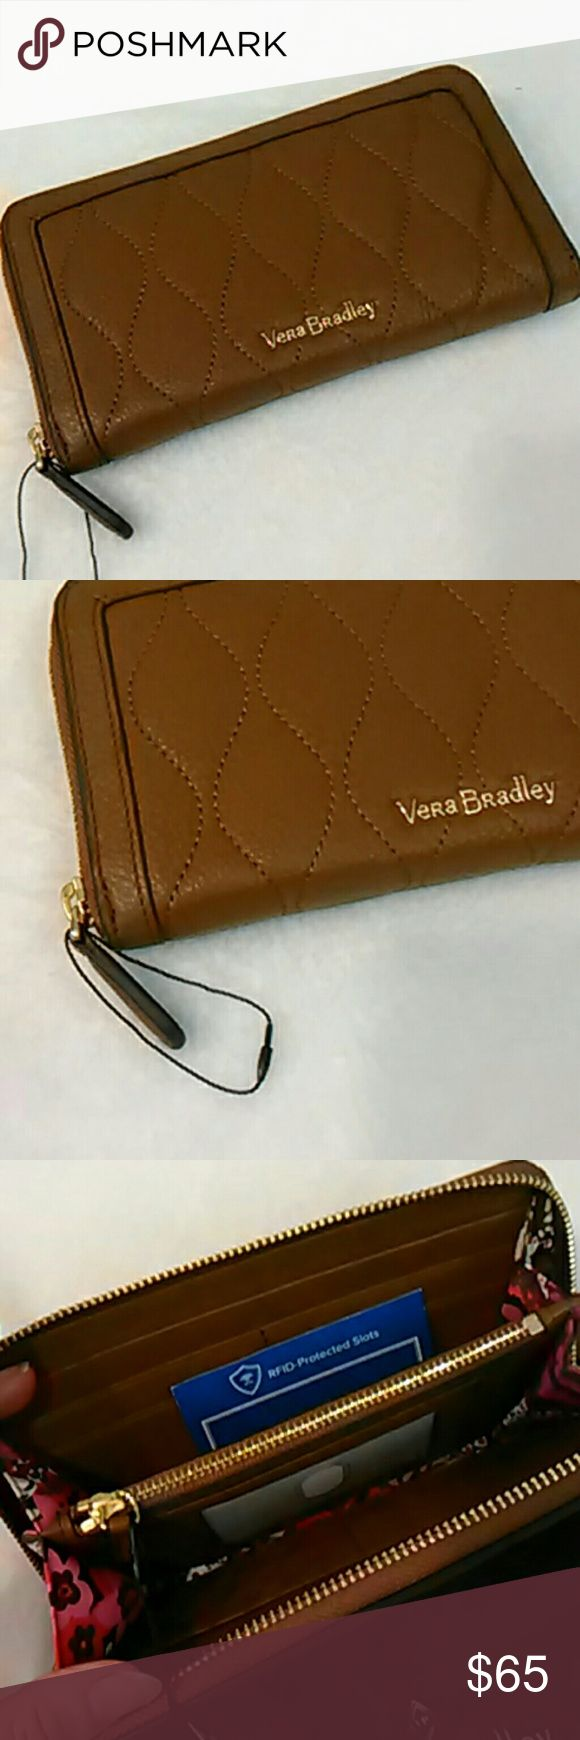 RFID wallet Georgia genuine quilted leather Brand new with tags, this is an RFID protected genuine quilted leather Georgia style wallet by Vera Bradley in cognac.  It zips open to reveal clear ID window, 8 card slips, 2 bill slips and a large zip pocket.  Comes with dustbag, as do all my Genuine leather Vera Bradley items.  I have some matching bags available too. Vera Bradley Bags Wallets